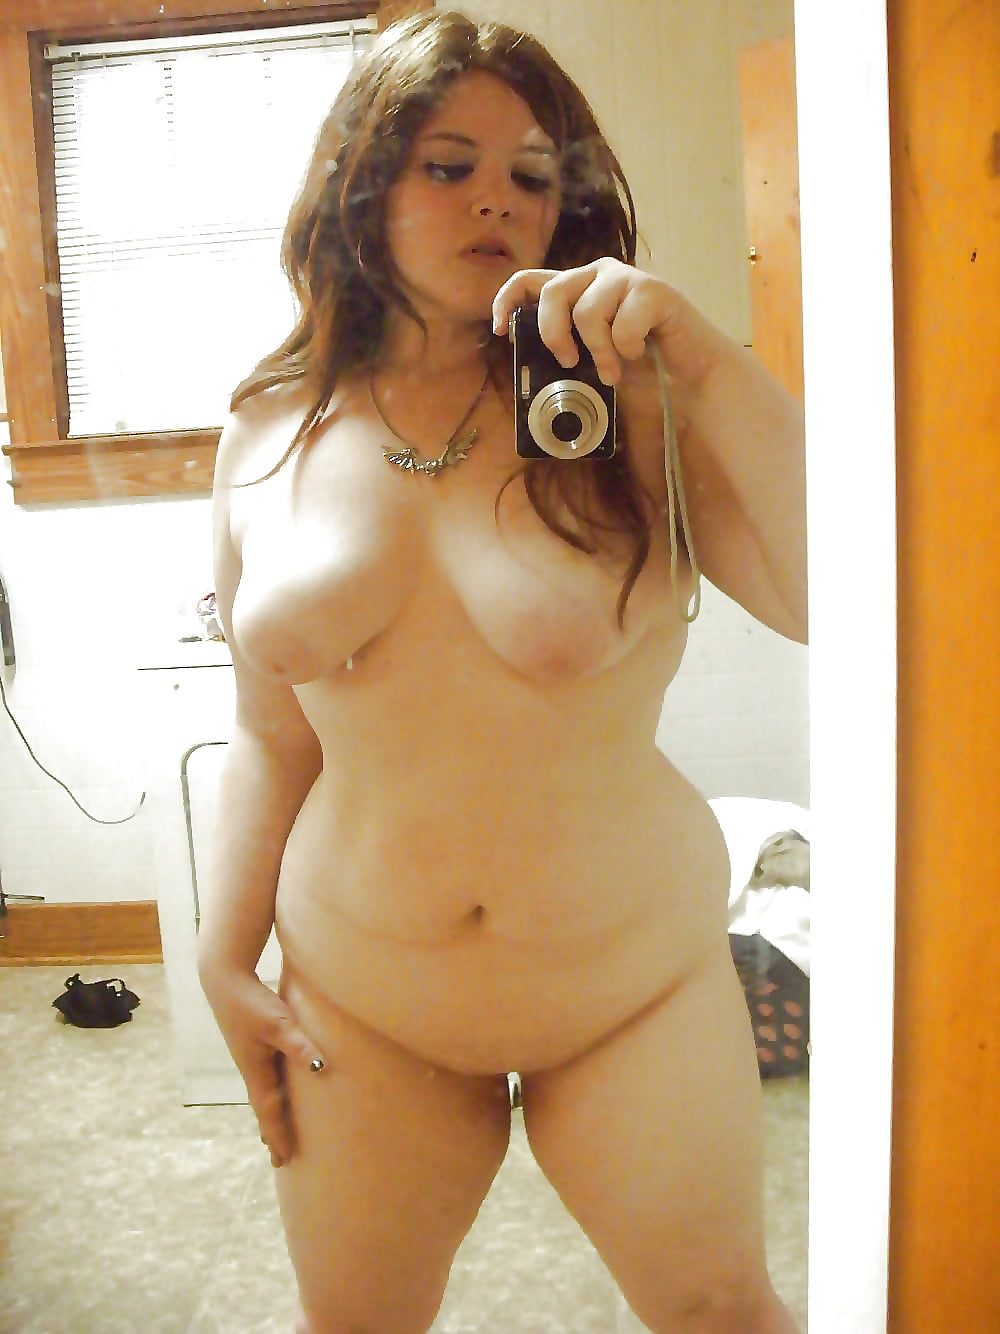 Chubby girls naked on kik, short hair girl sex pics